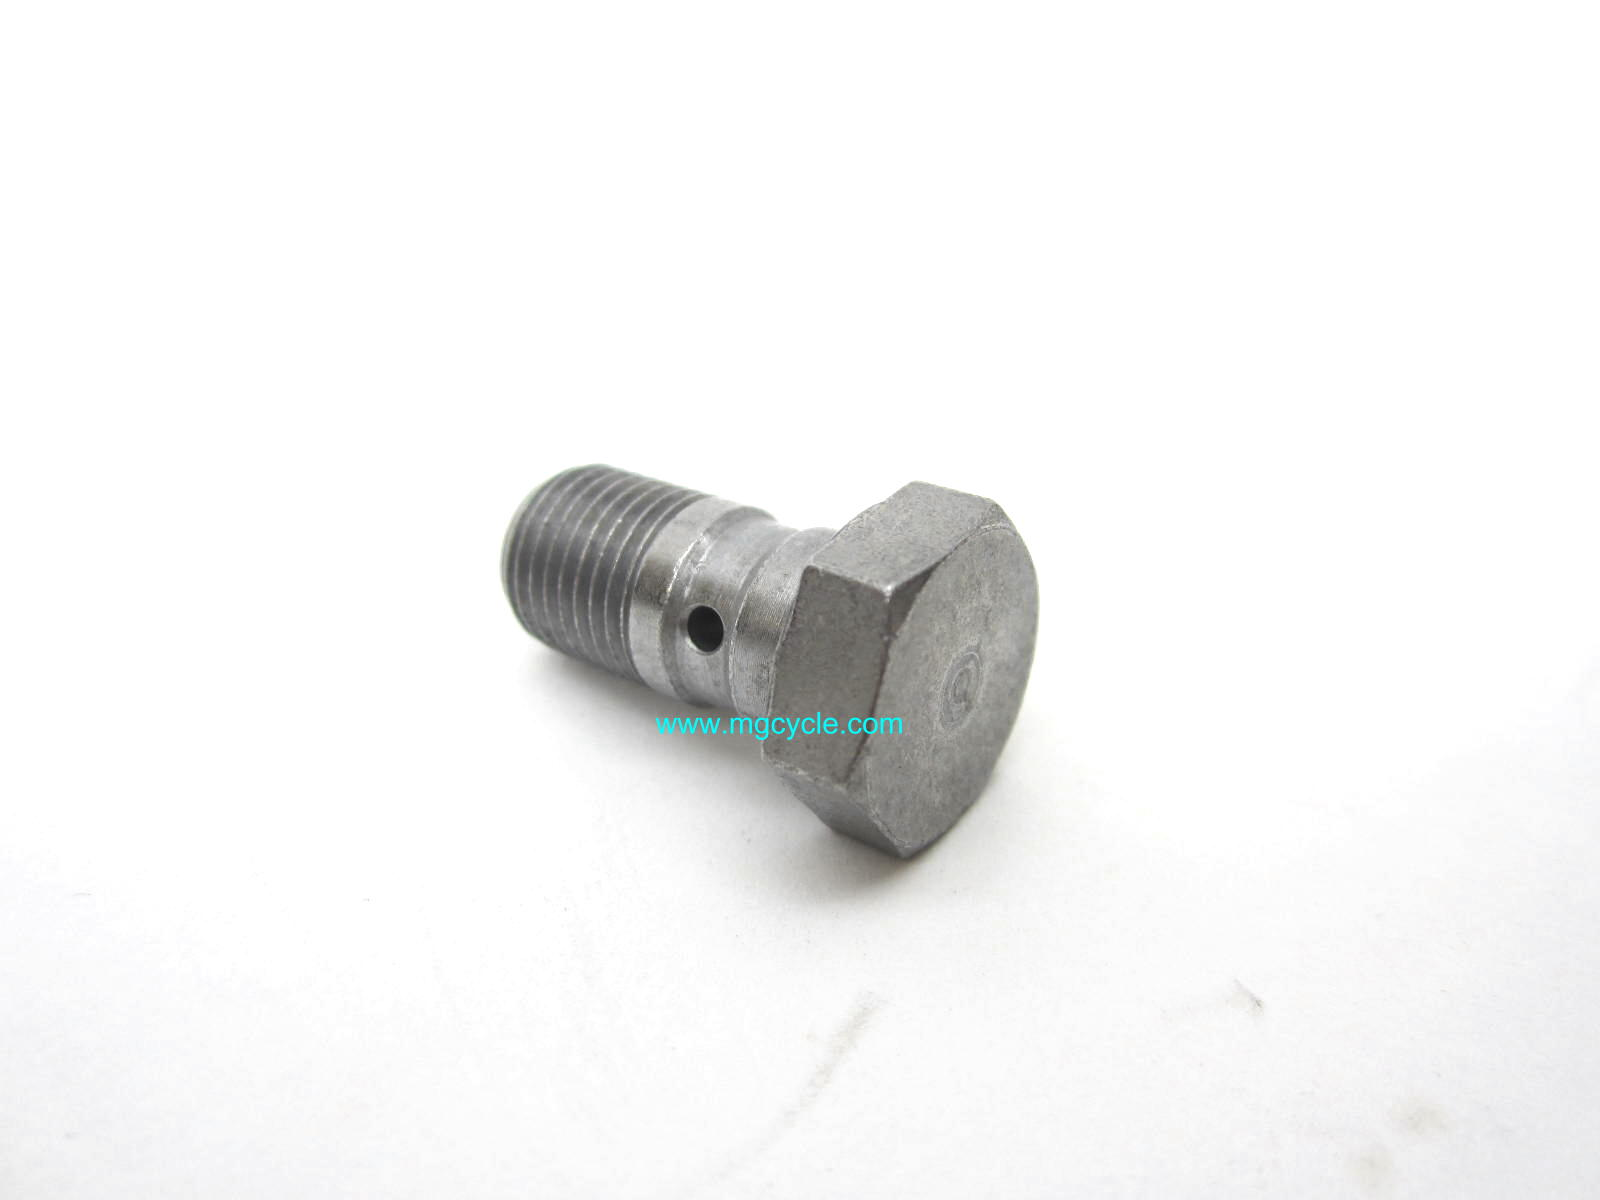 Genuine Brembo steel banjo bolt 10mm x 1.00 thread pitch